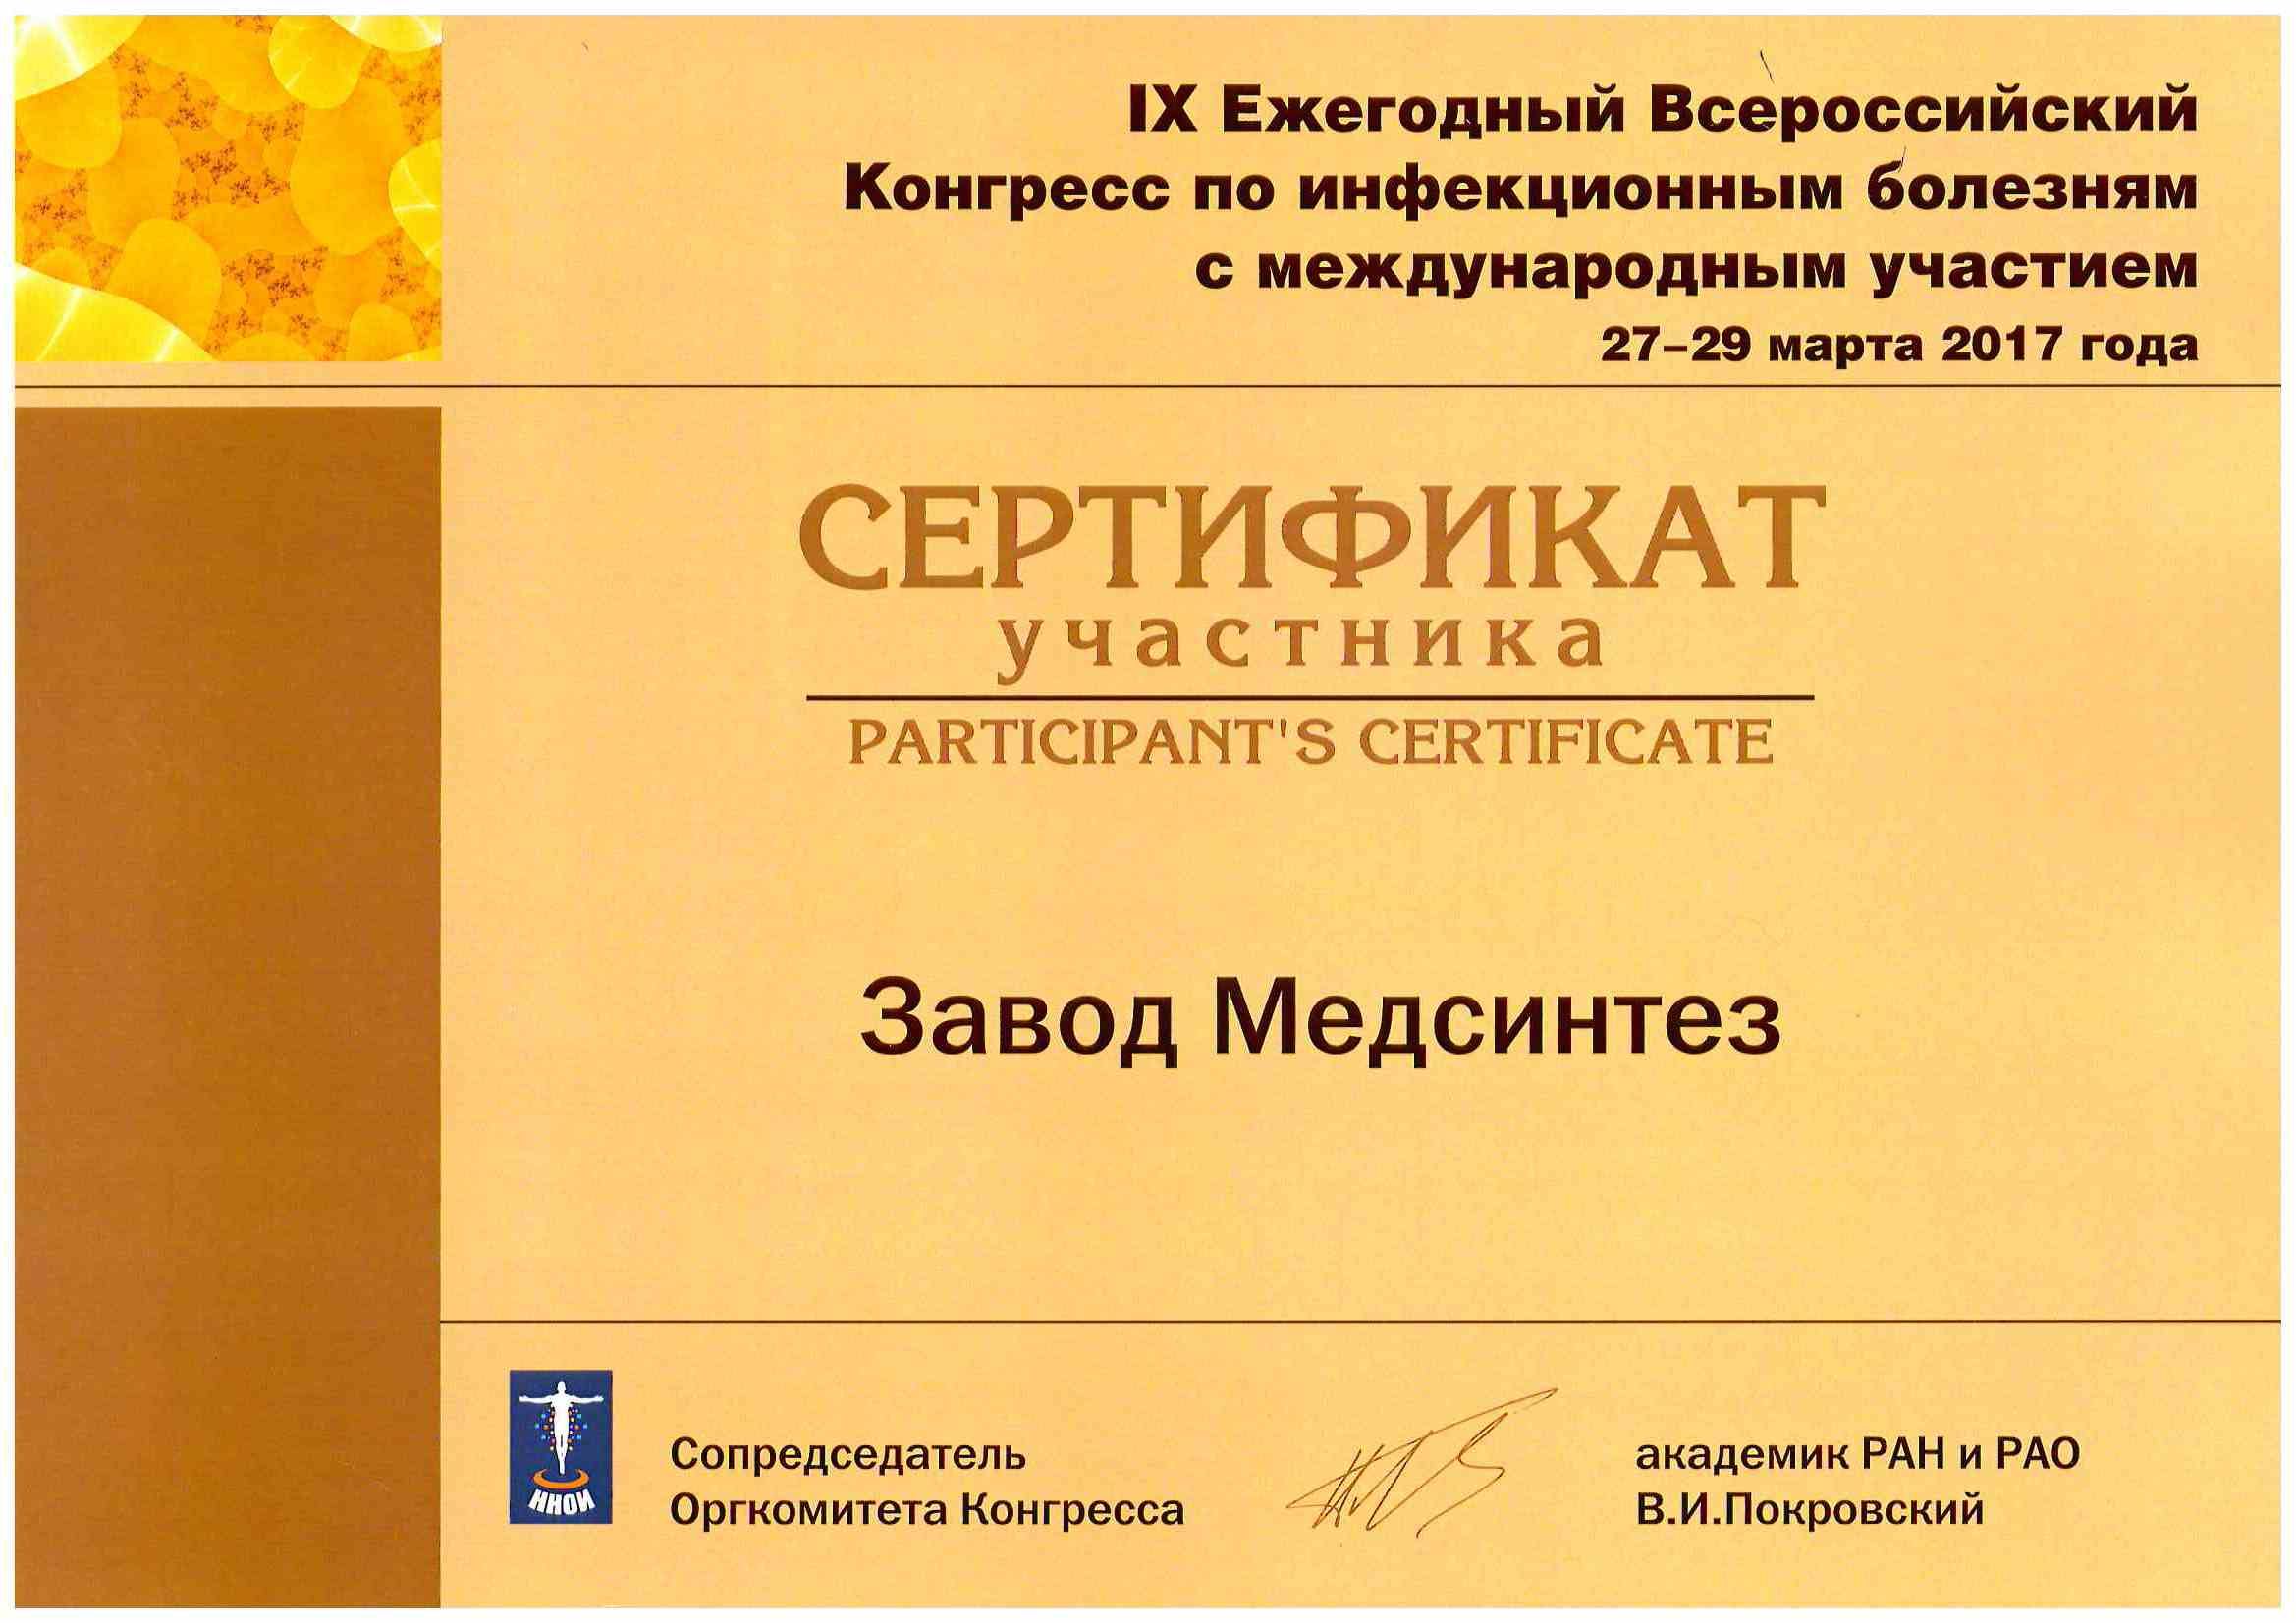 The Certificate of participation in the 9th Annual All-Russian Congress on Infectious Diseases with international participation, March 27-29, 2017, Moscow